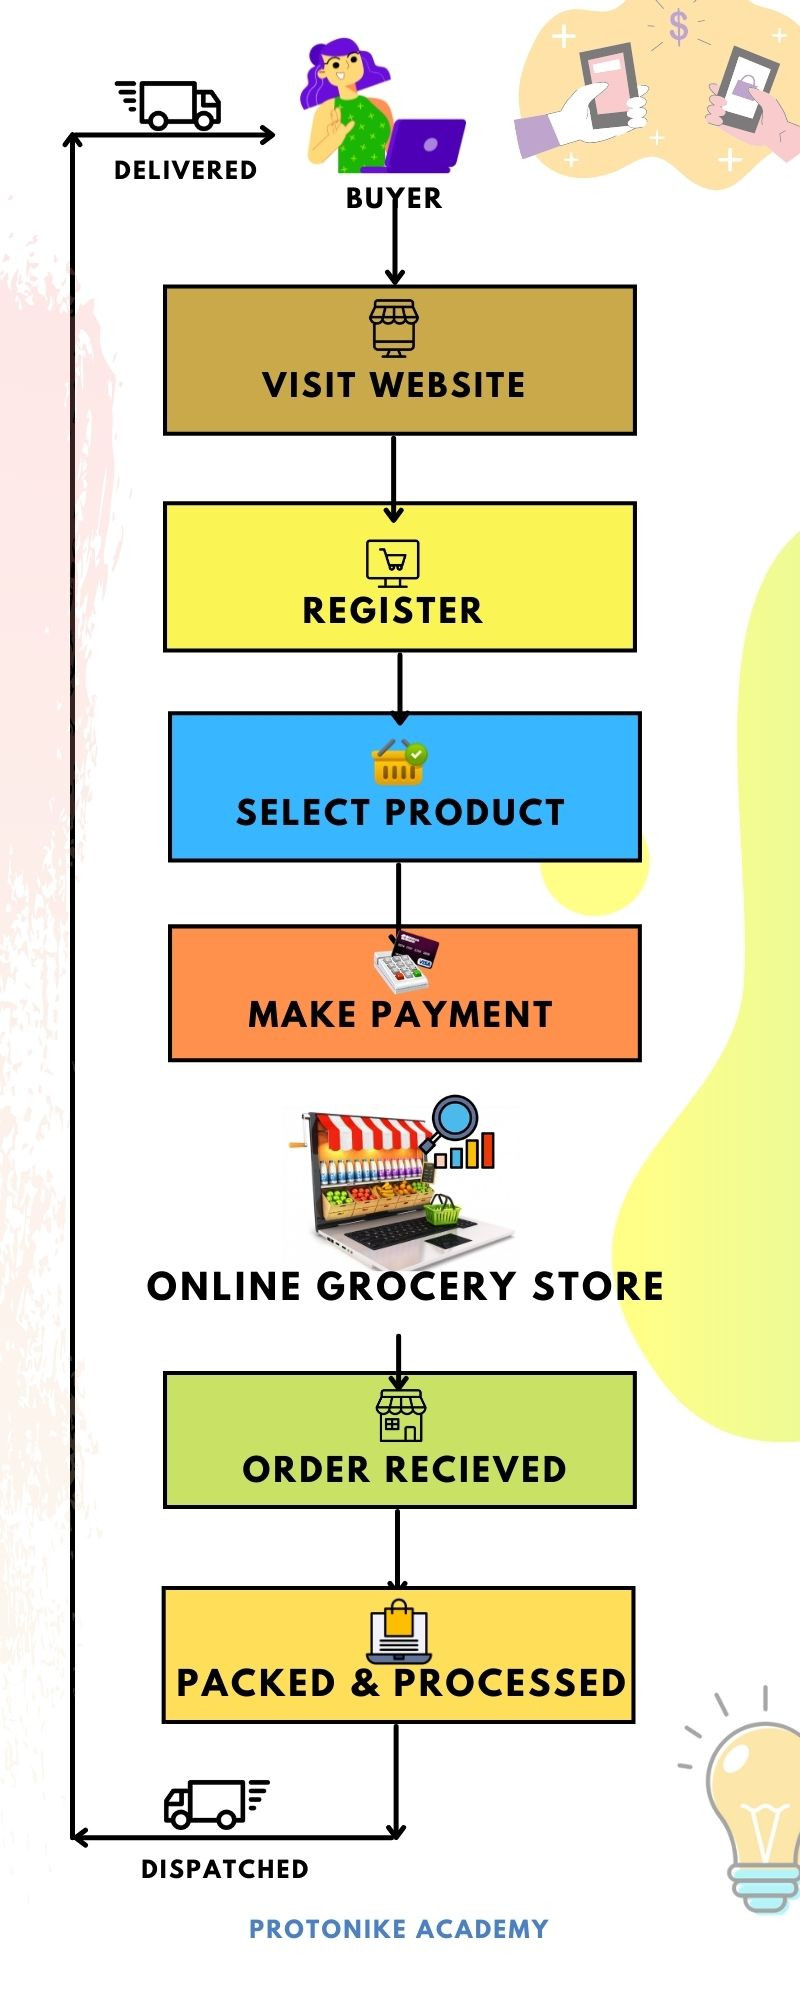 Business Model for an online grocery store